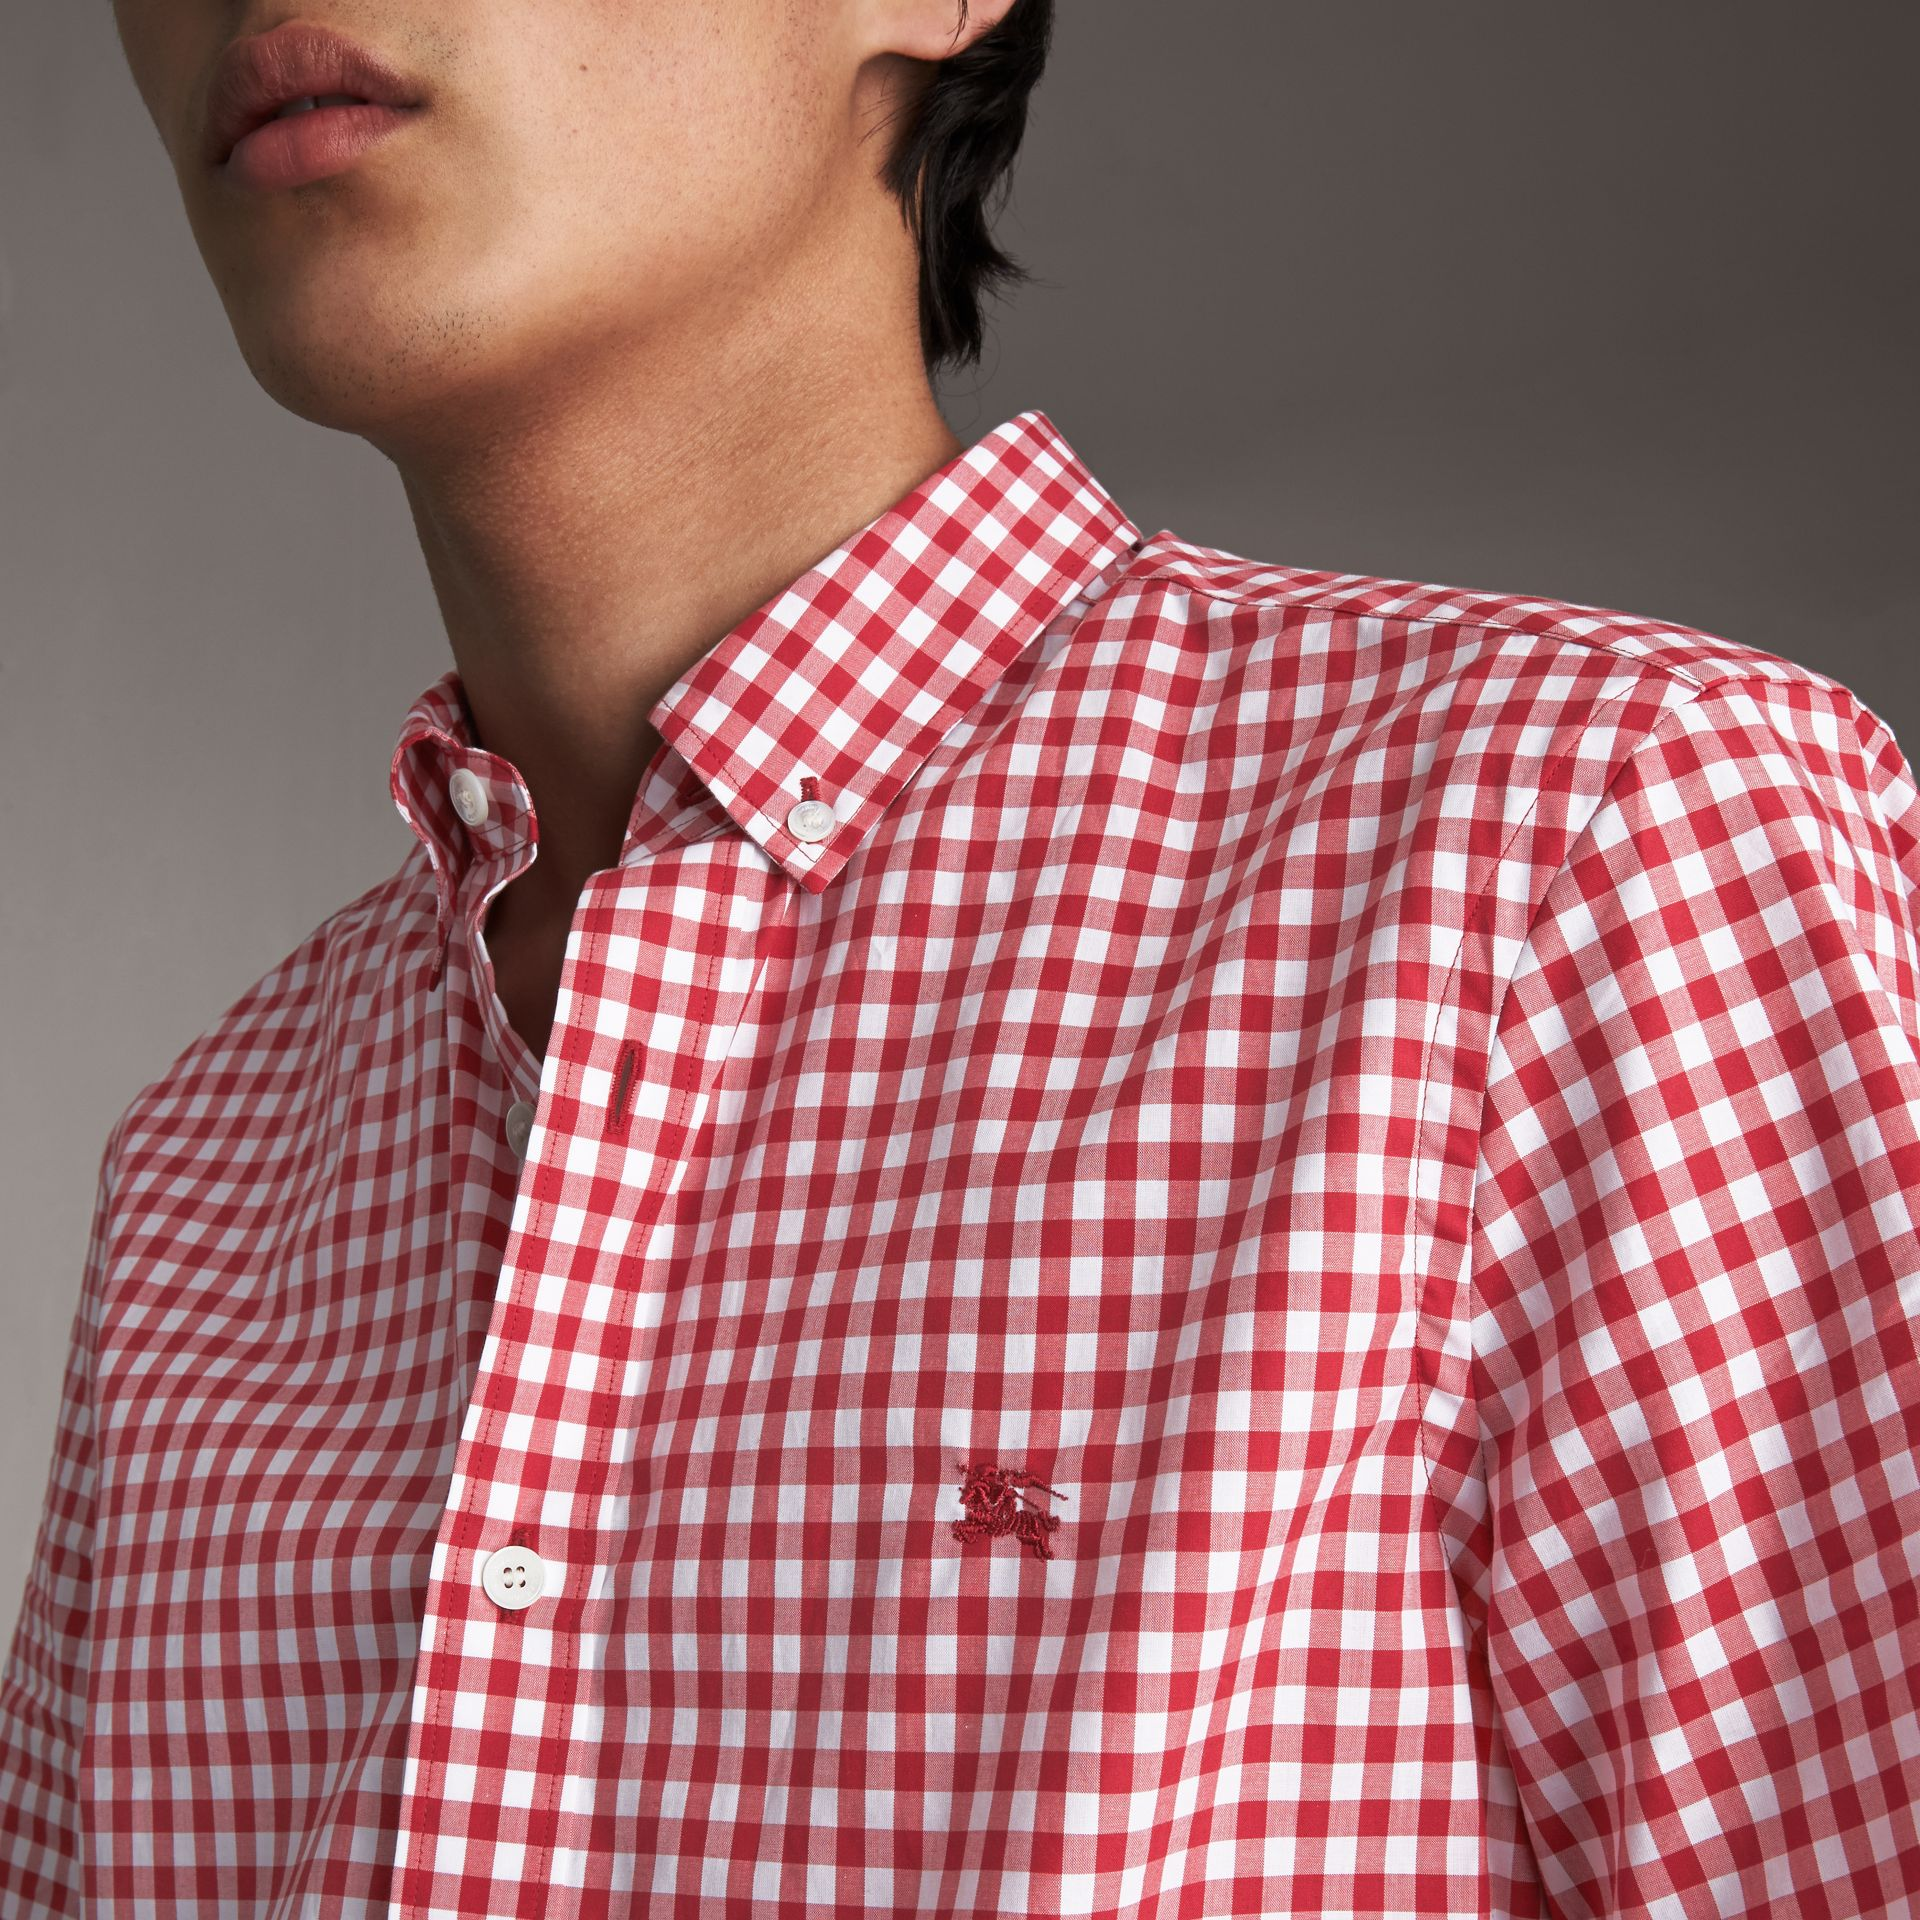 Short-sleeve Button-down Collar Cotton Gingham Shirt in Parade Red - Men | Burberry United States - gallery image 3